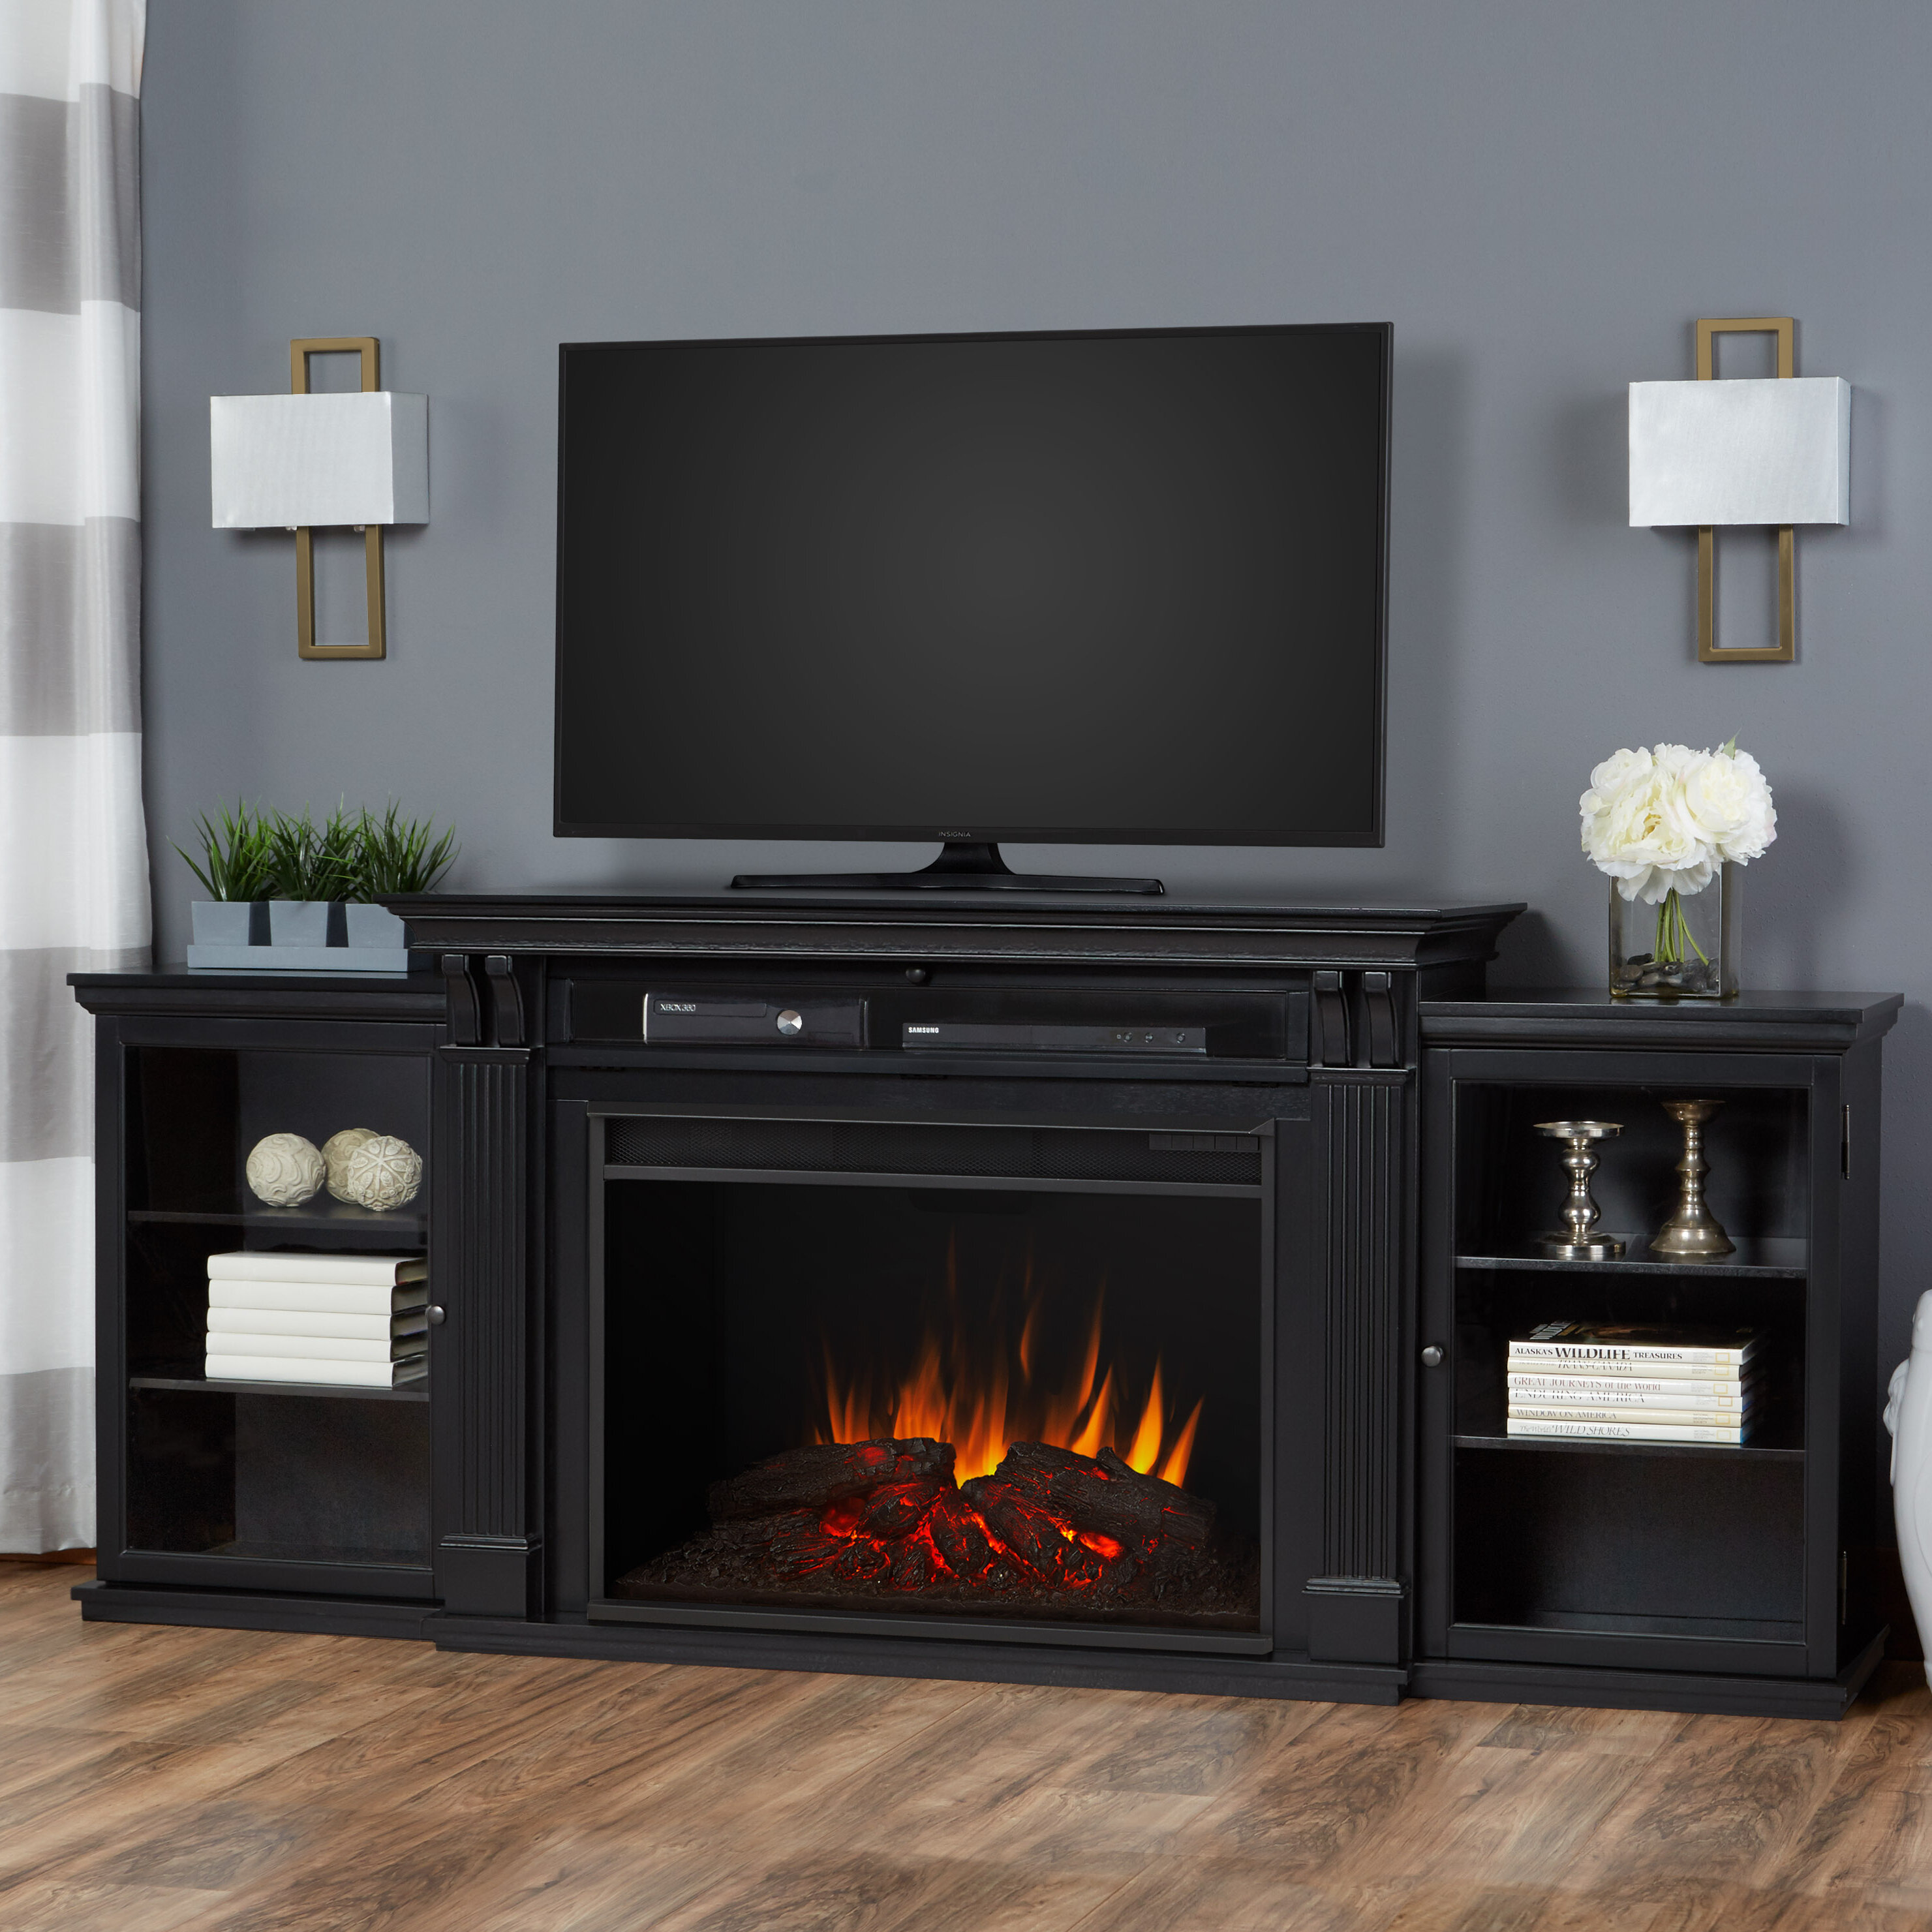 electric electricfireplace best ideas fireplaces page insert for decor club small lists living of fireplace and bedroom corner room